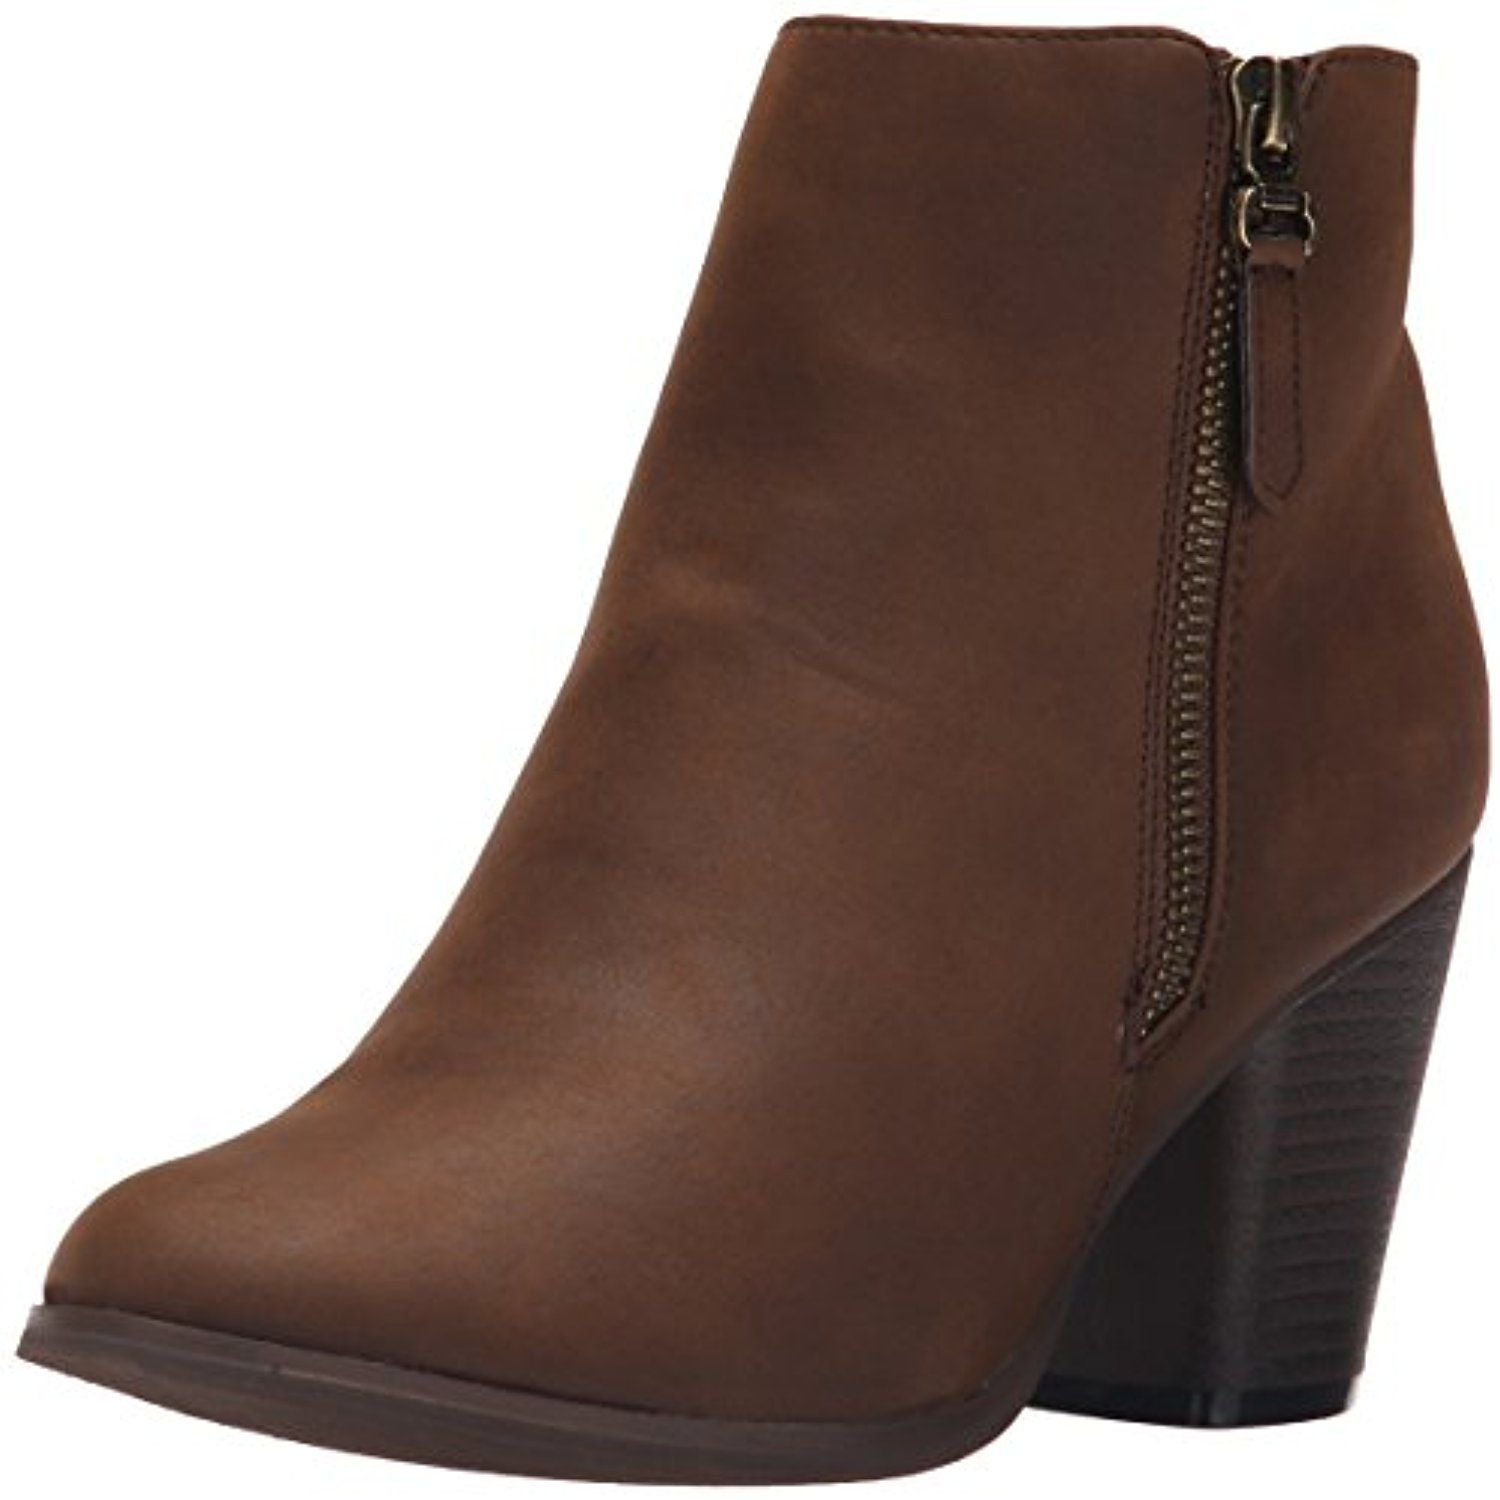 BABA-02 STACKED HEEL ZIPPER ANKLE BOOTIES - BROWN